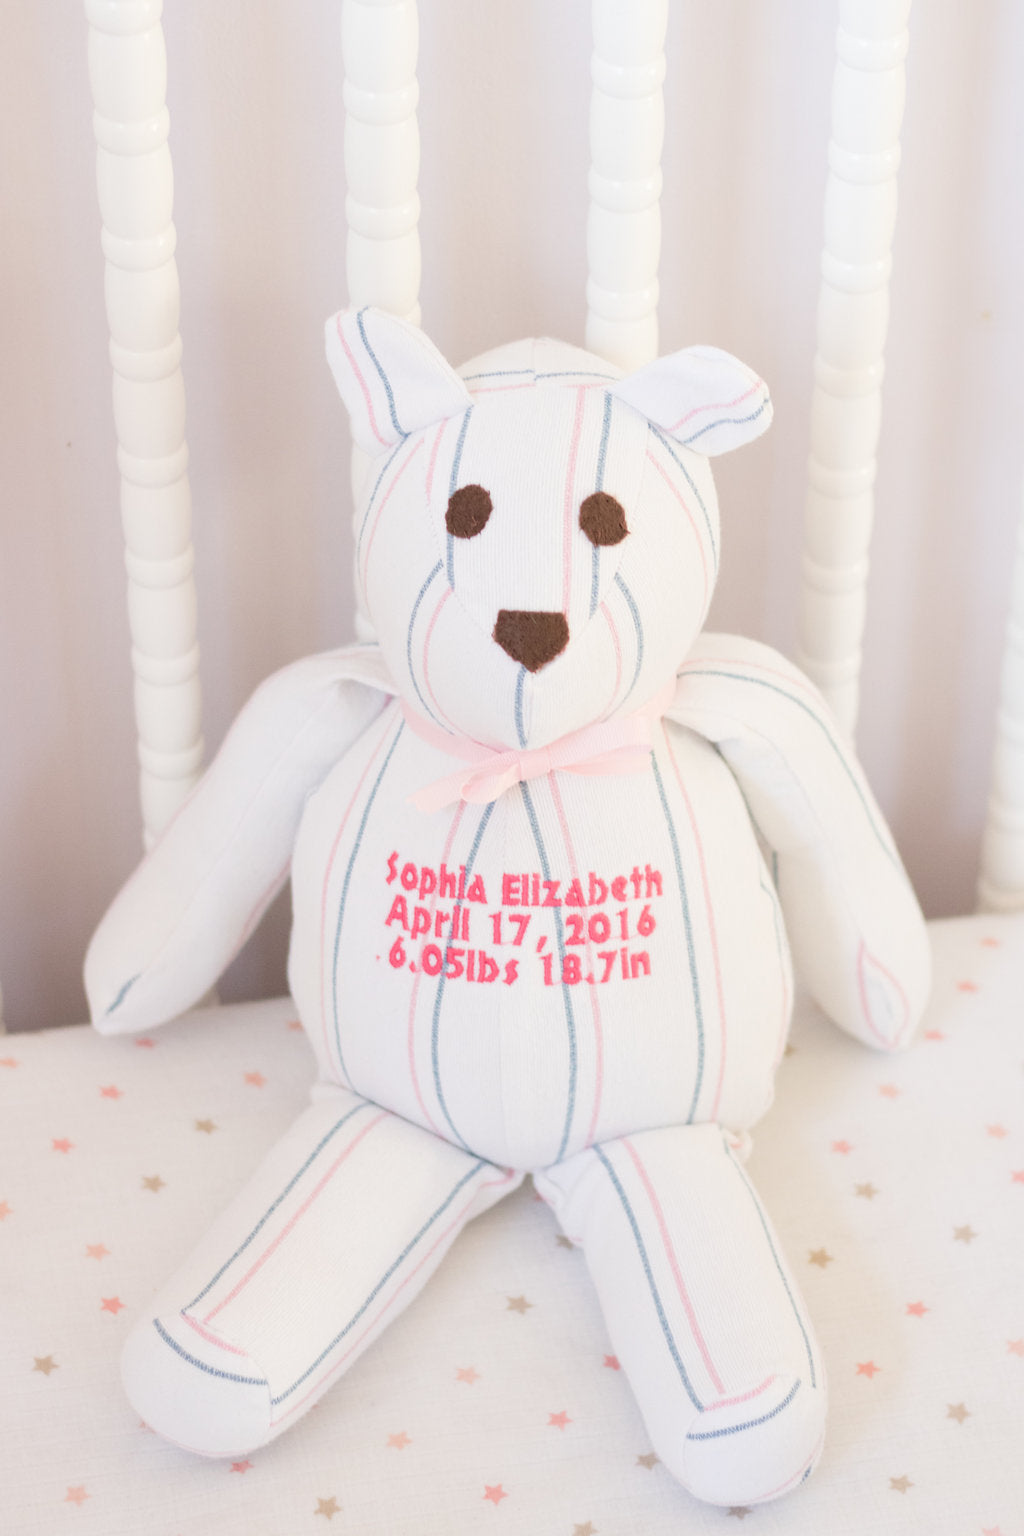 Keepsake Baby Gifts - Stuffed Bear - Baby Gift Items-Stitches by Natalie-Stitches by Natalie